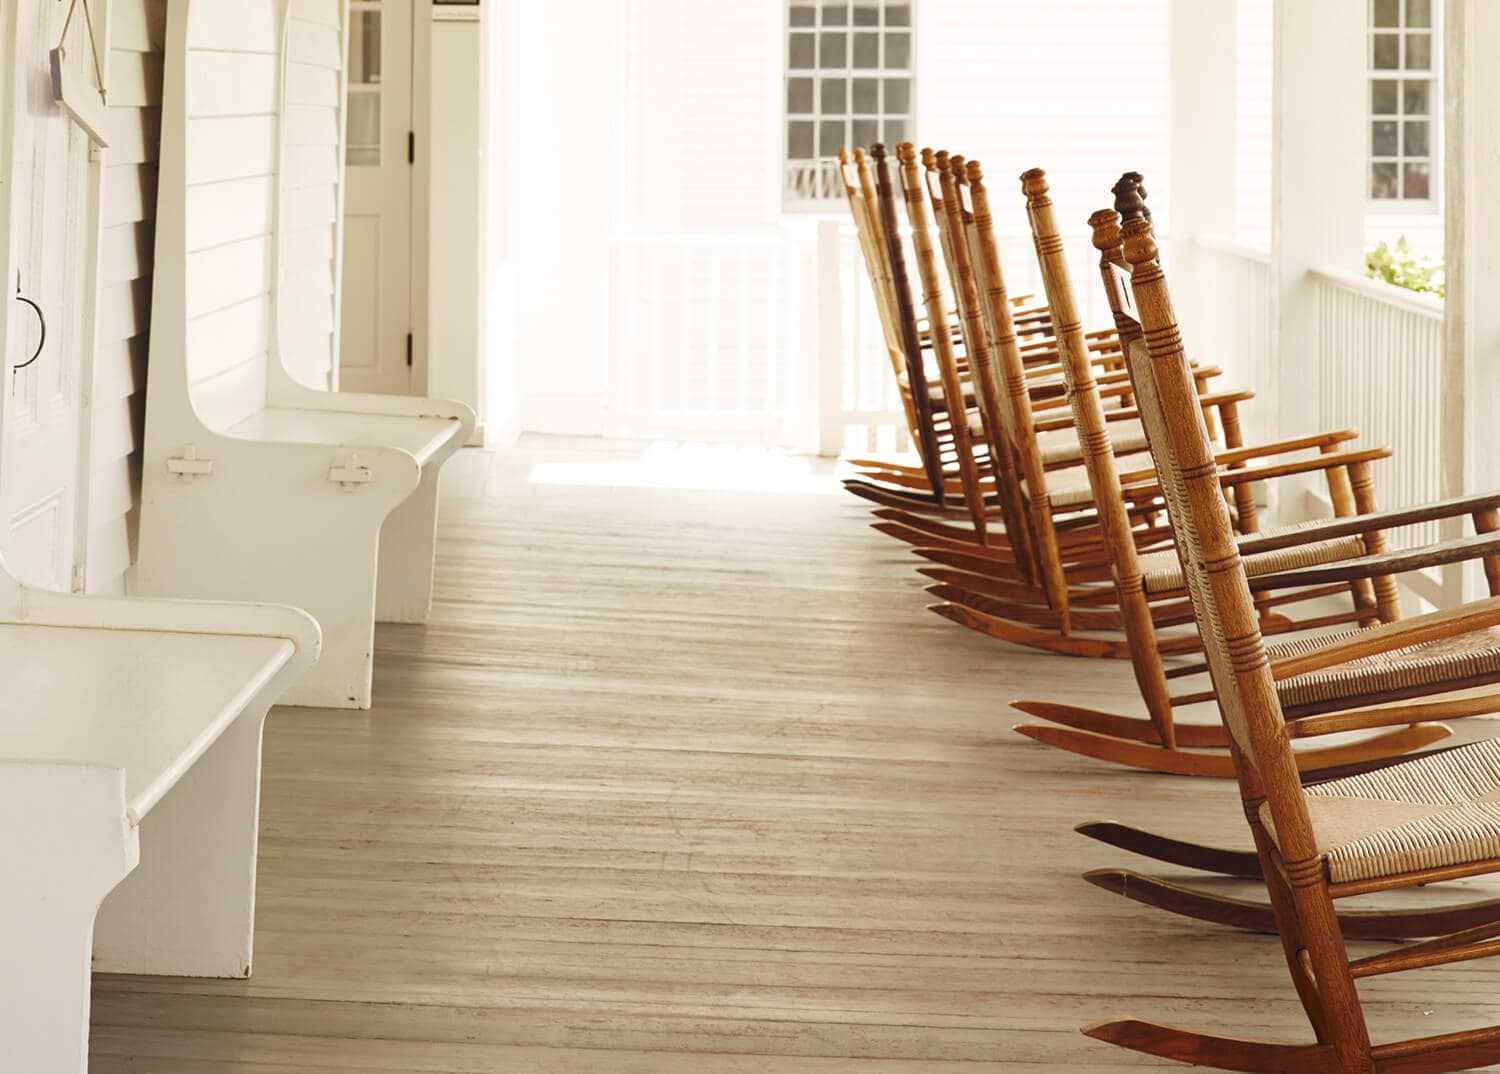 Porch at Mountainside Treatment Center chapel, lined with beautiful wooden rocking chairs- Canaan, Connecticut.